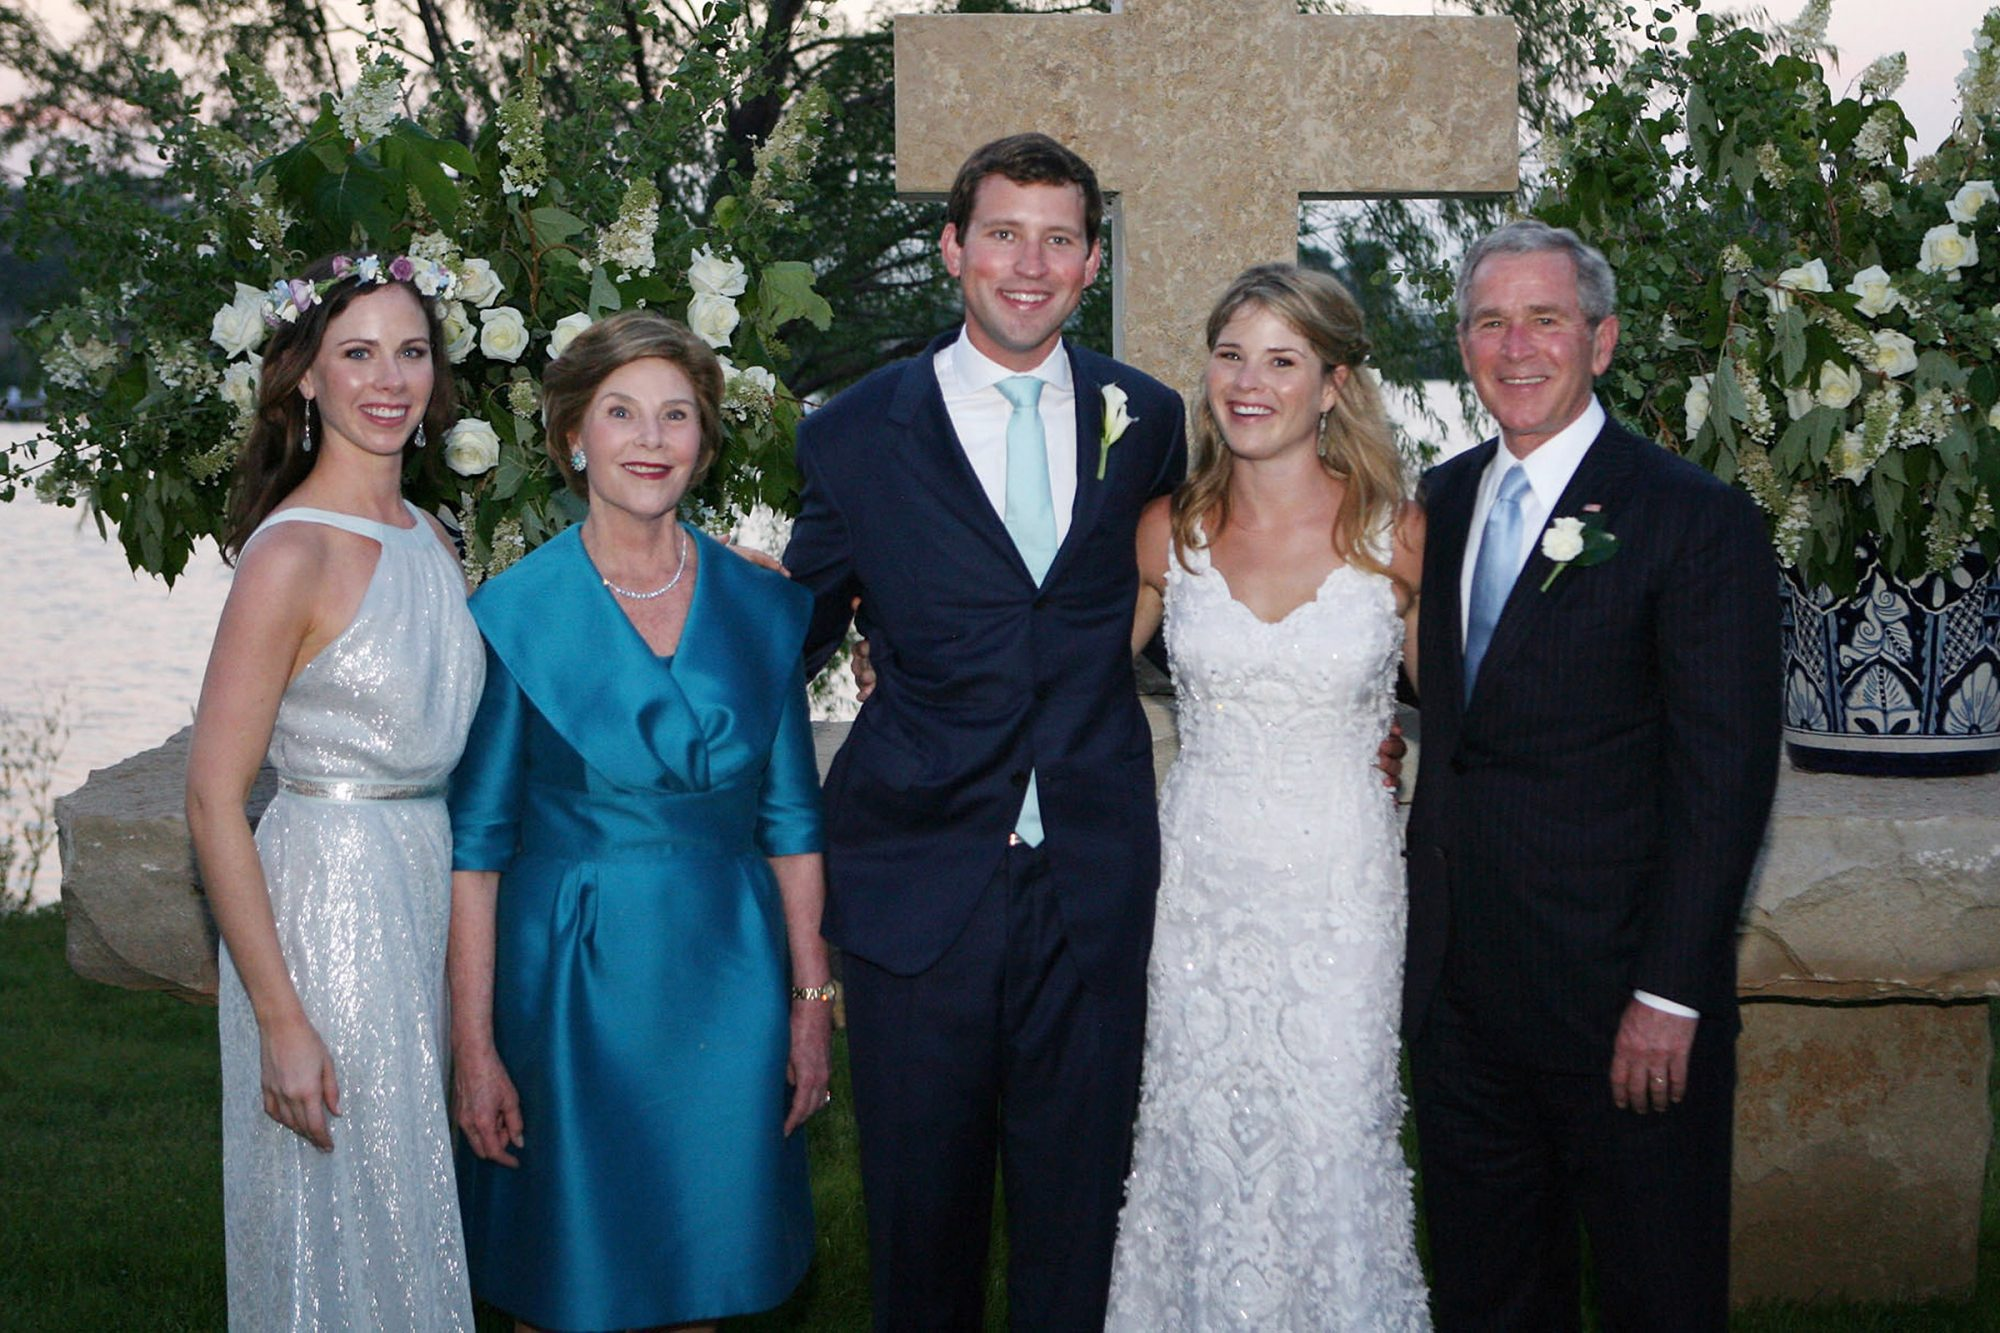 Jenna Bush and Henry Hager Wedding in Crawford, Texasw